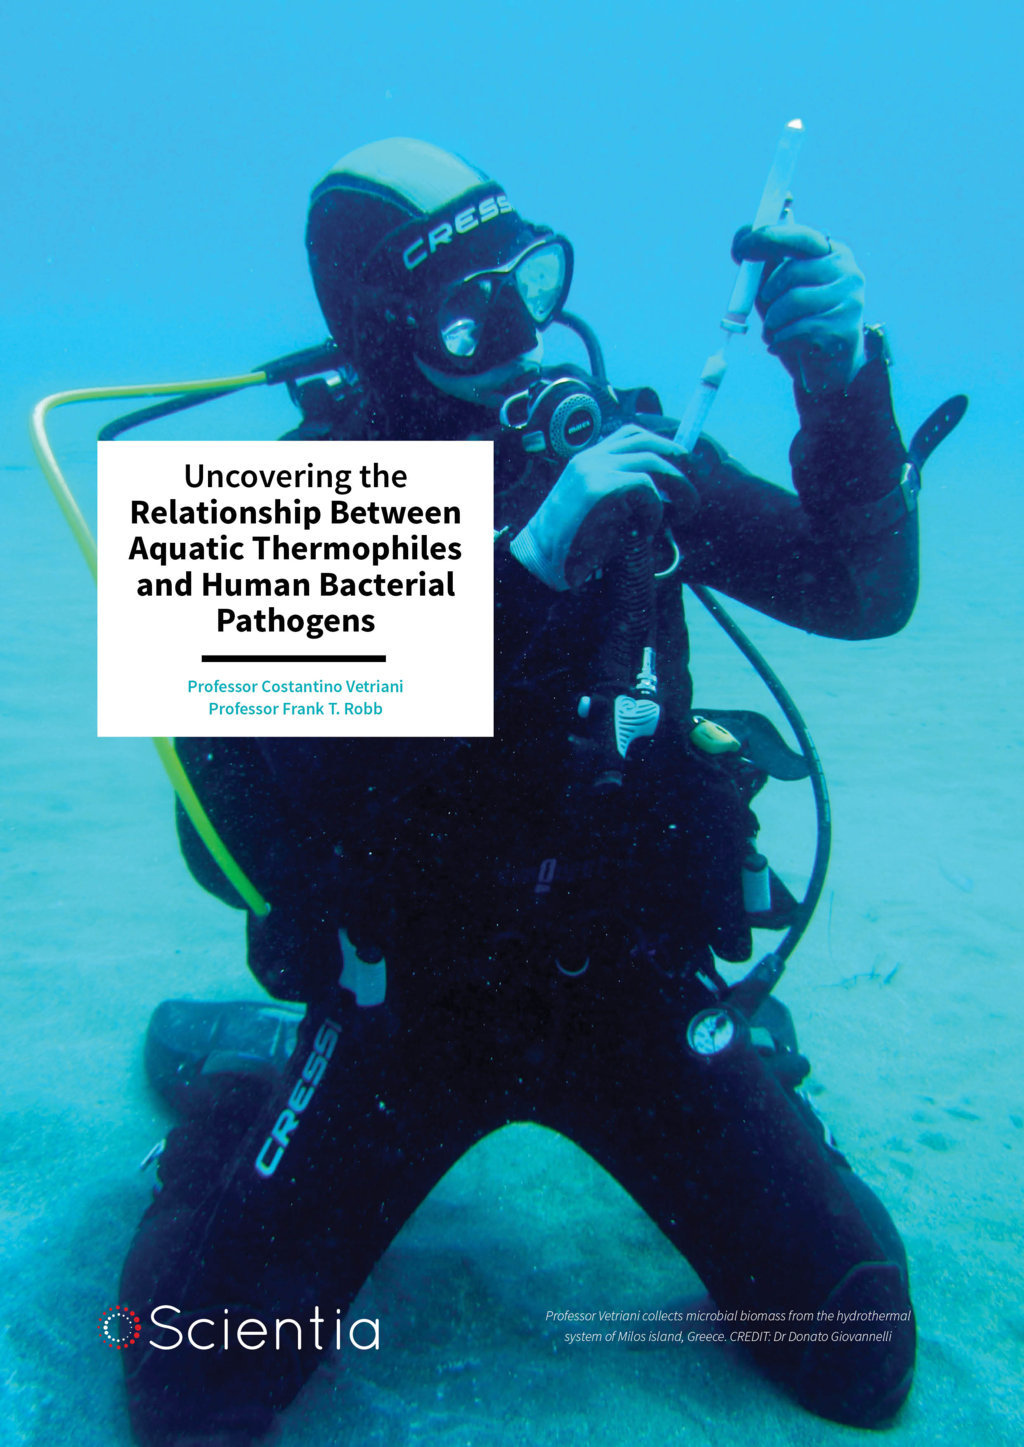 Professor Costantino Vetriani | Professor Frank T. Robb – Uncovering The Relationship Between Aquatic Thermophiles And Human Bacterial Pathogens